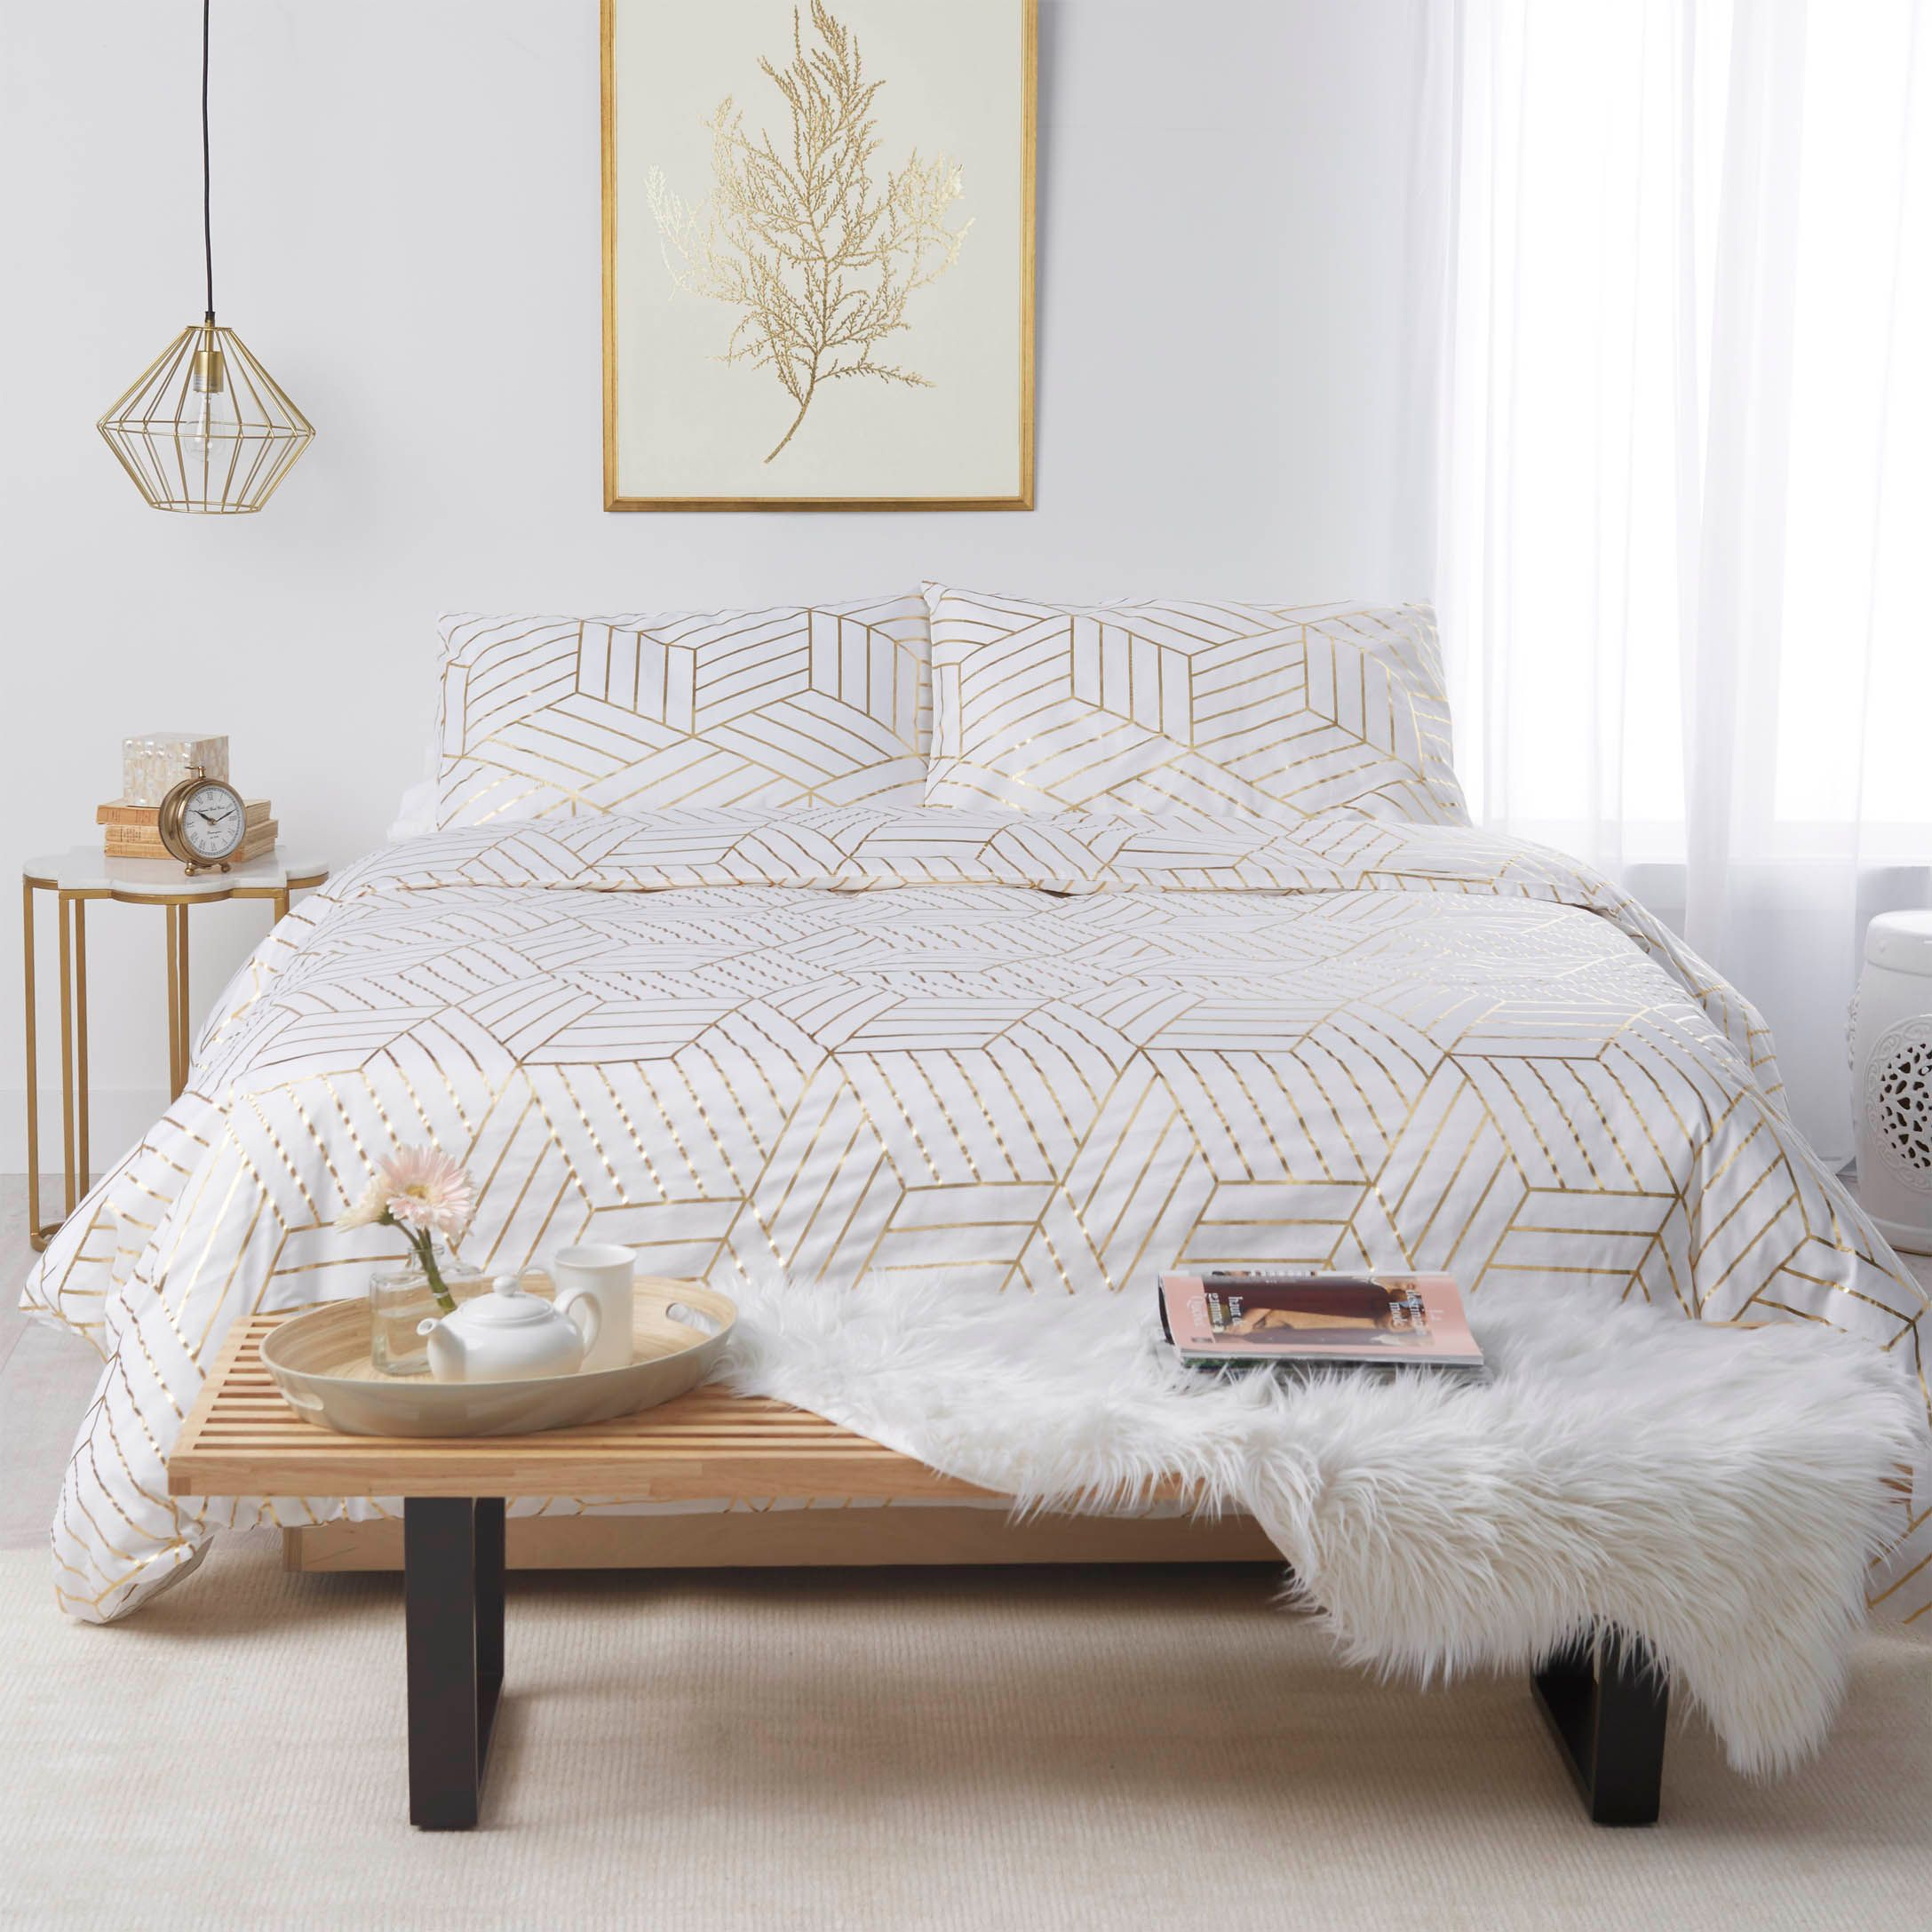 sweetgalas christmas duvets hotel queen frame king white duvet raised cheery style ac metallic pattern girls size collection set solid silver embroidered appealing together cover image new royal red braided with lacquer silentnight bedding coverlet covers of sets piece trim tog full